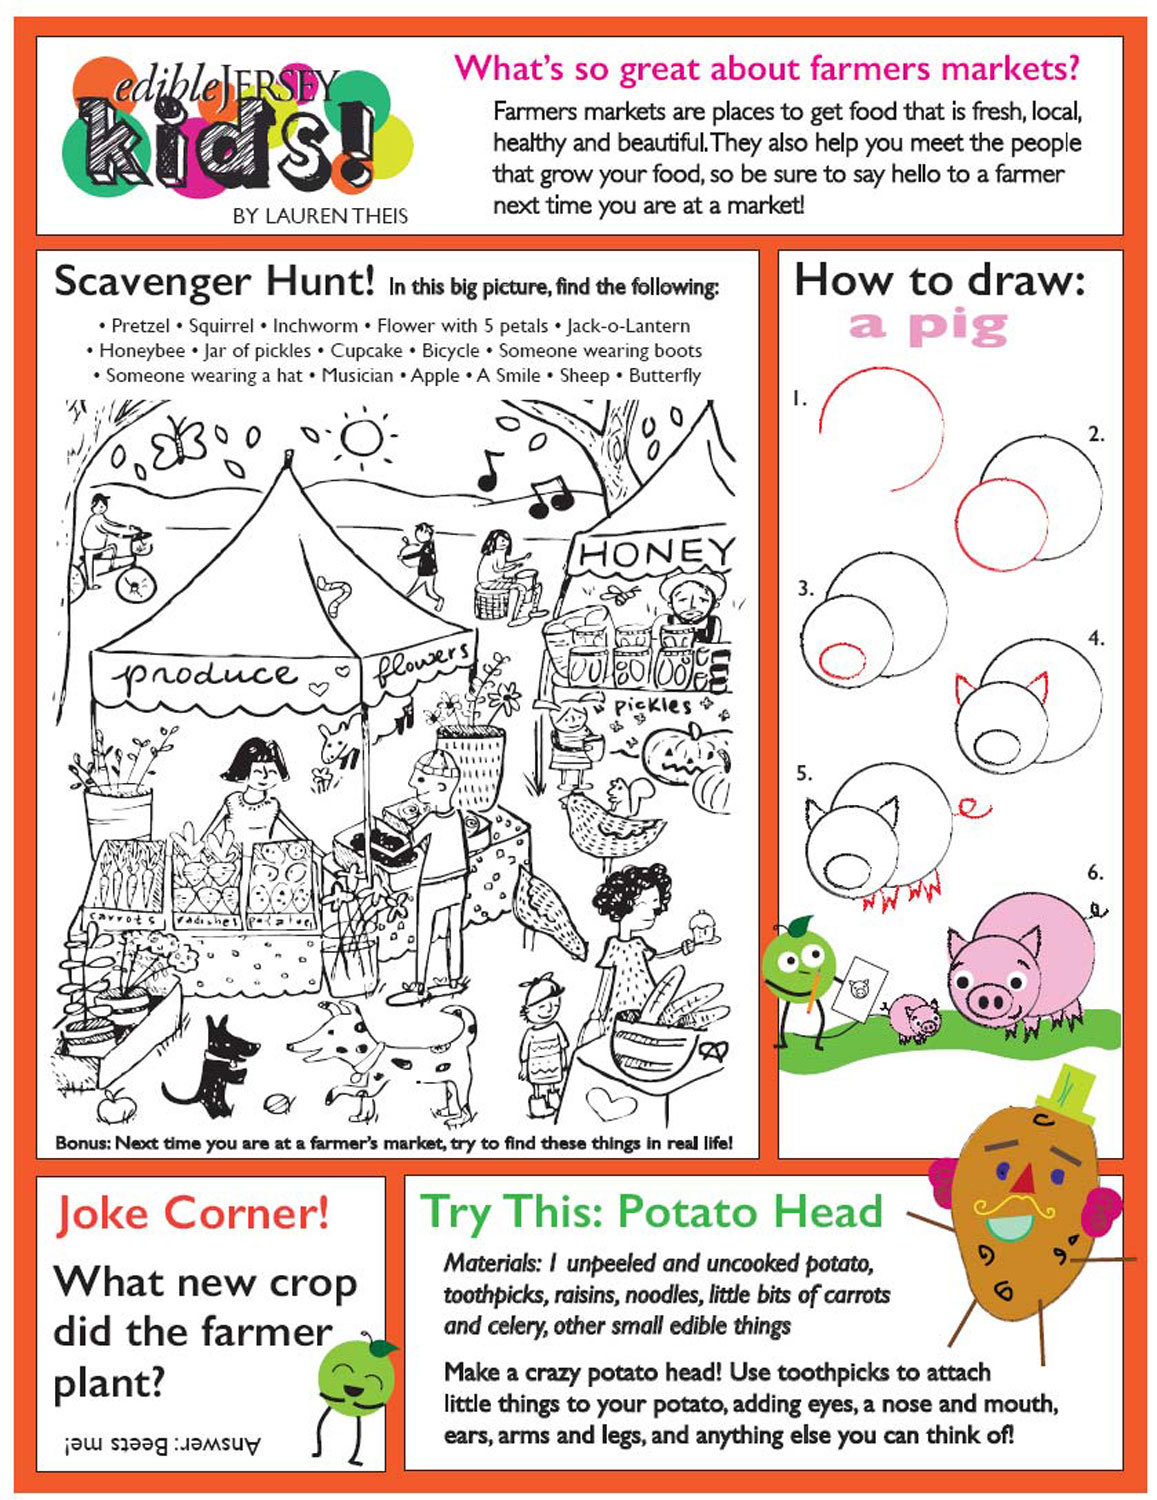 Summer Farmers' Market Worksheet for Kids | Edible Jersey